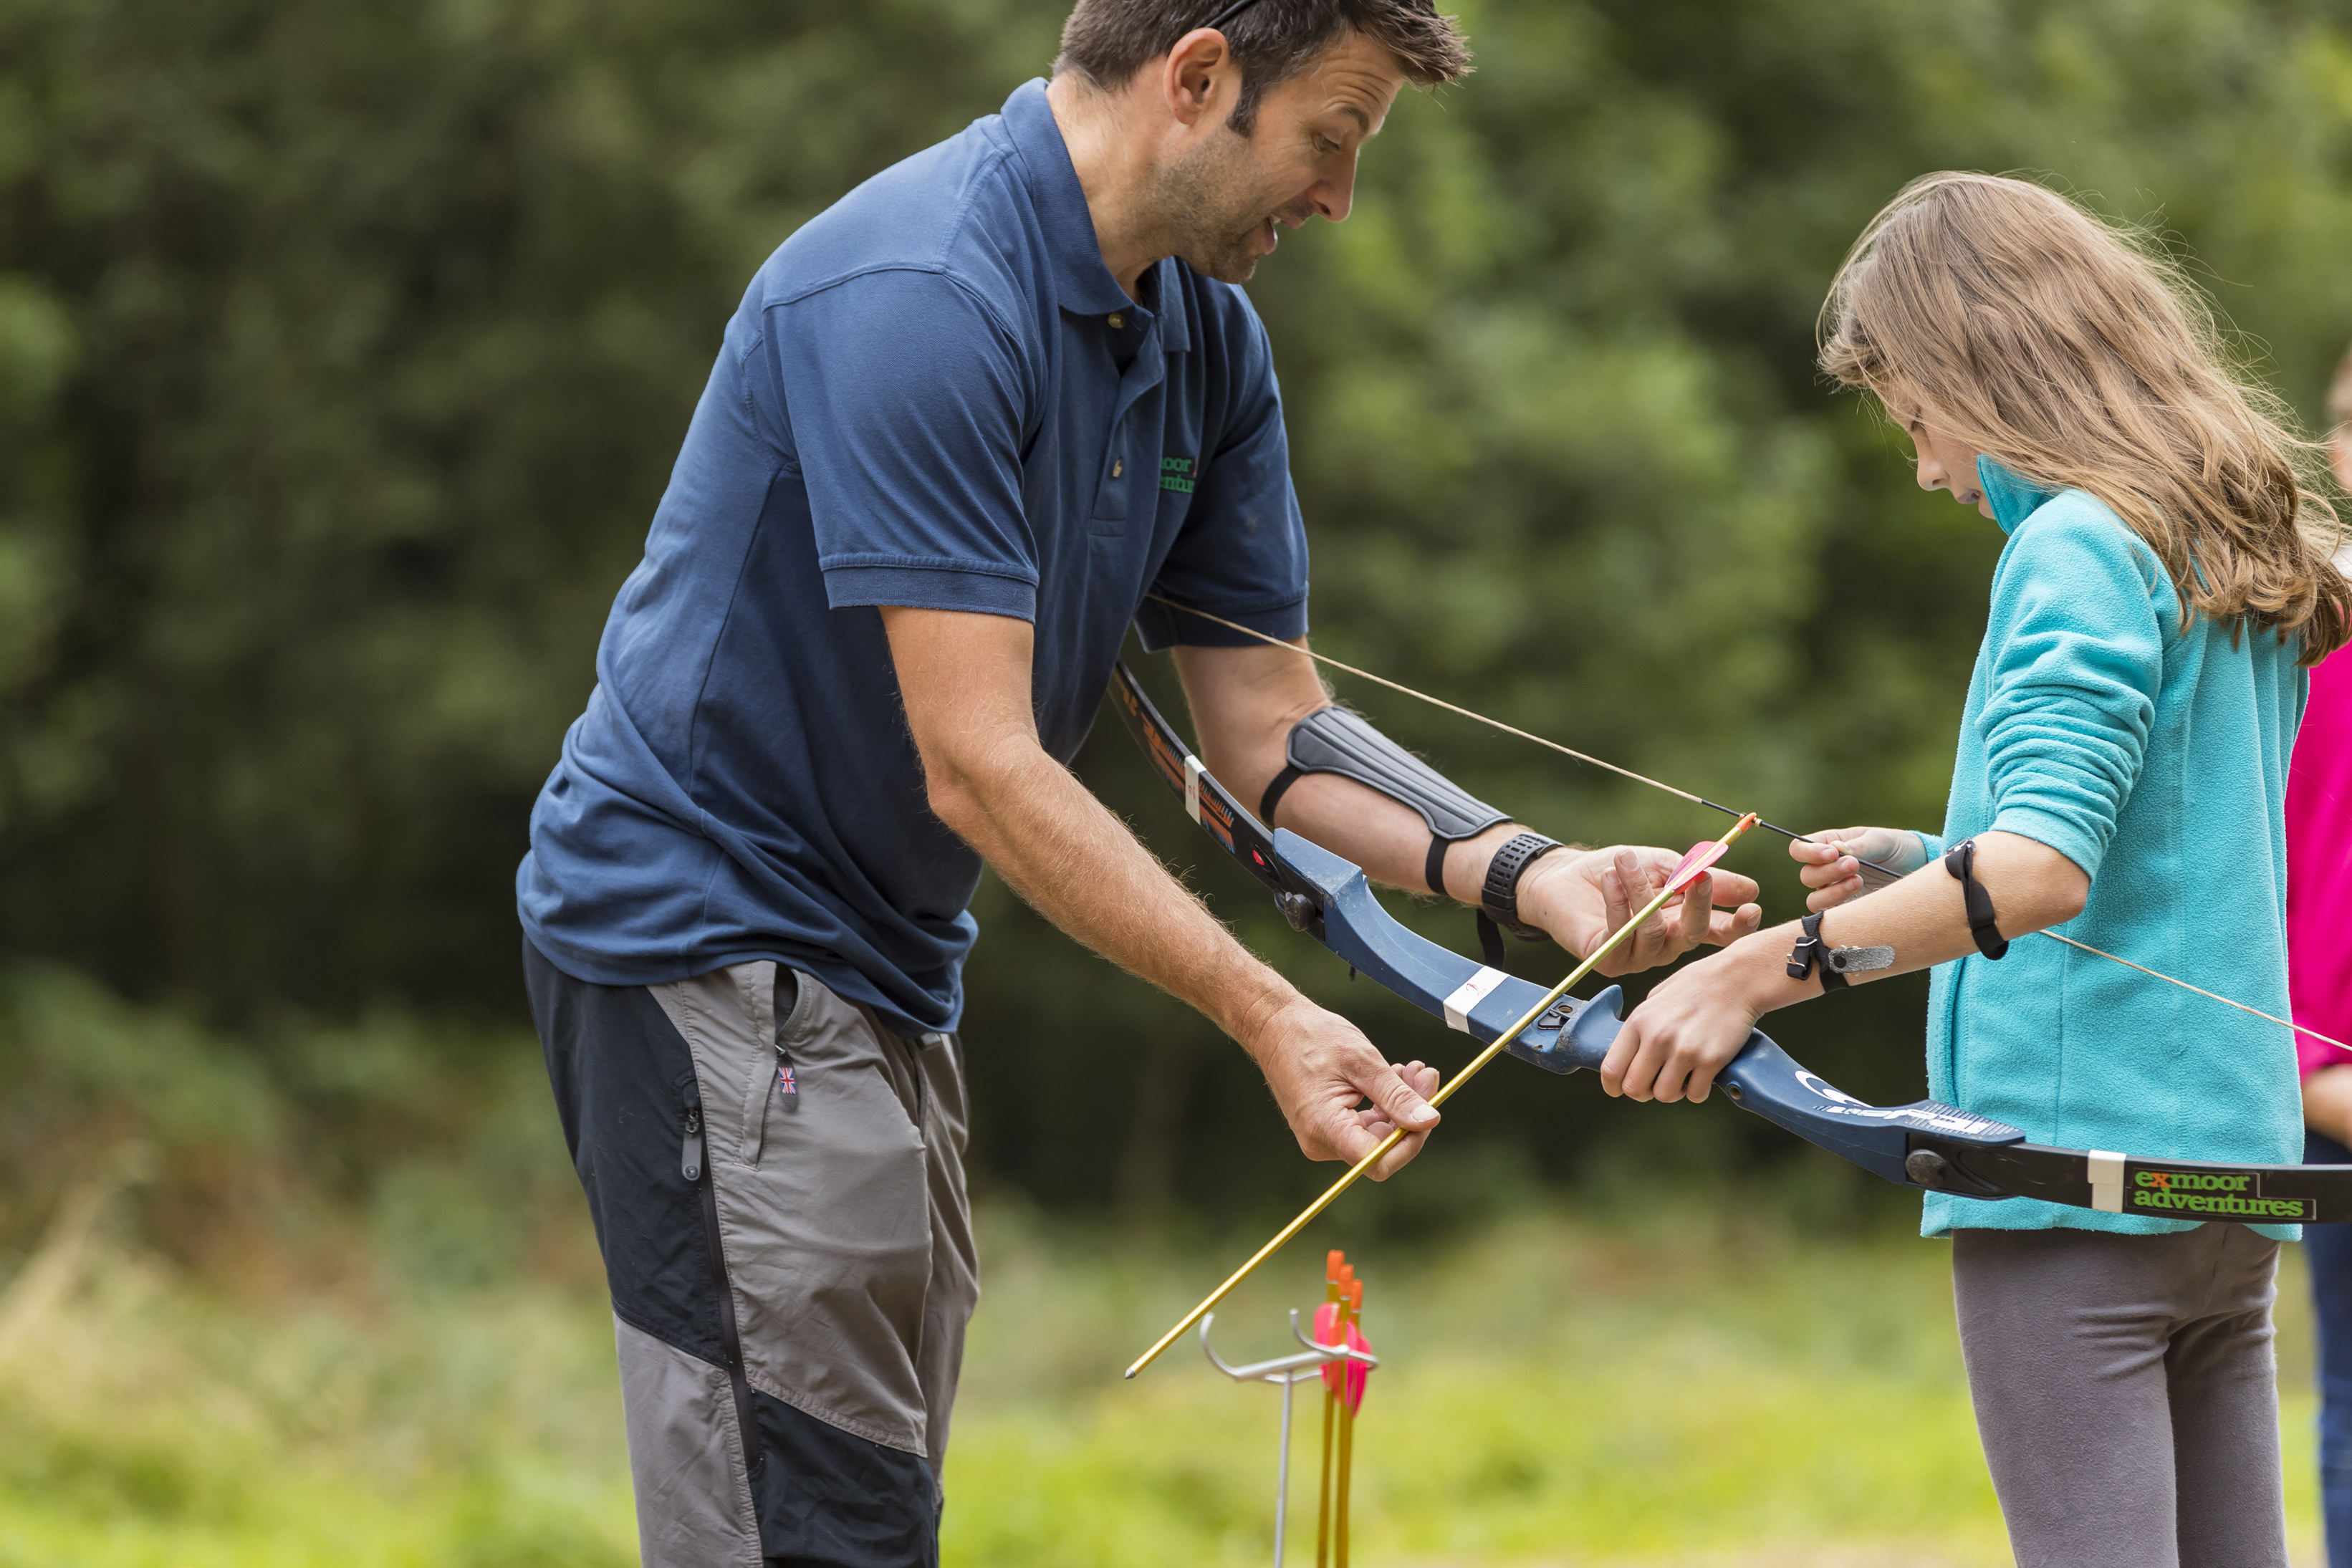 Join in some archery fun (Chris Lacey/National Trust Images/PA)